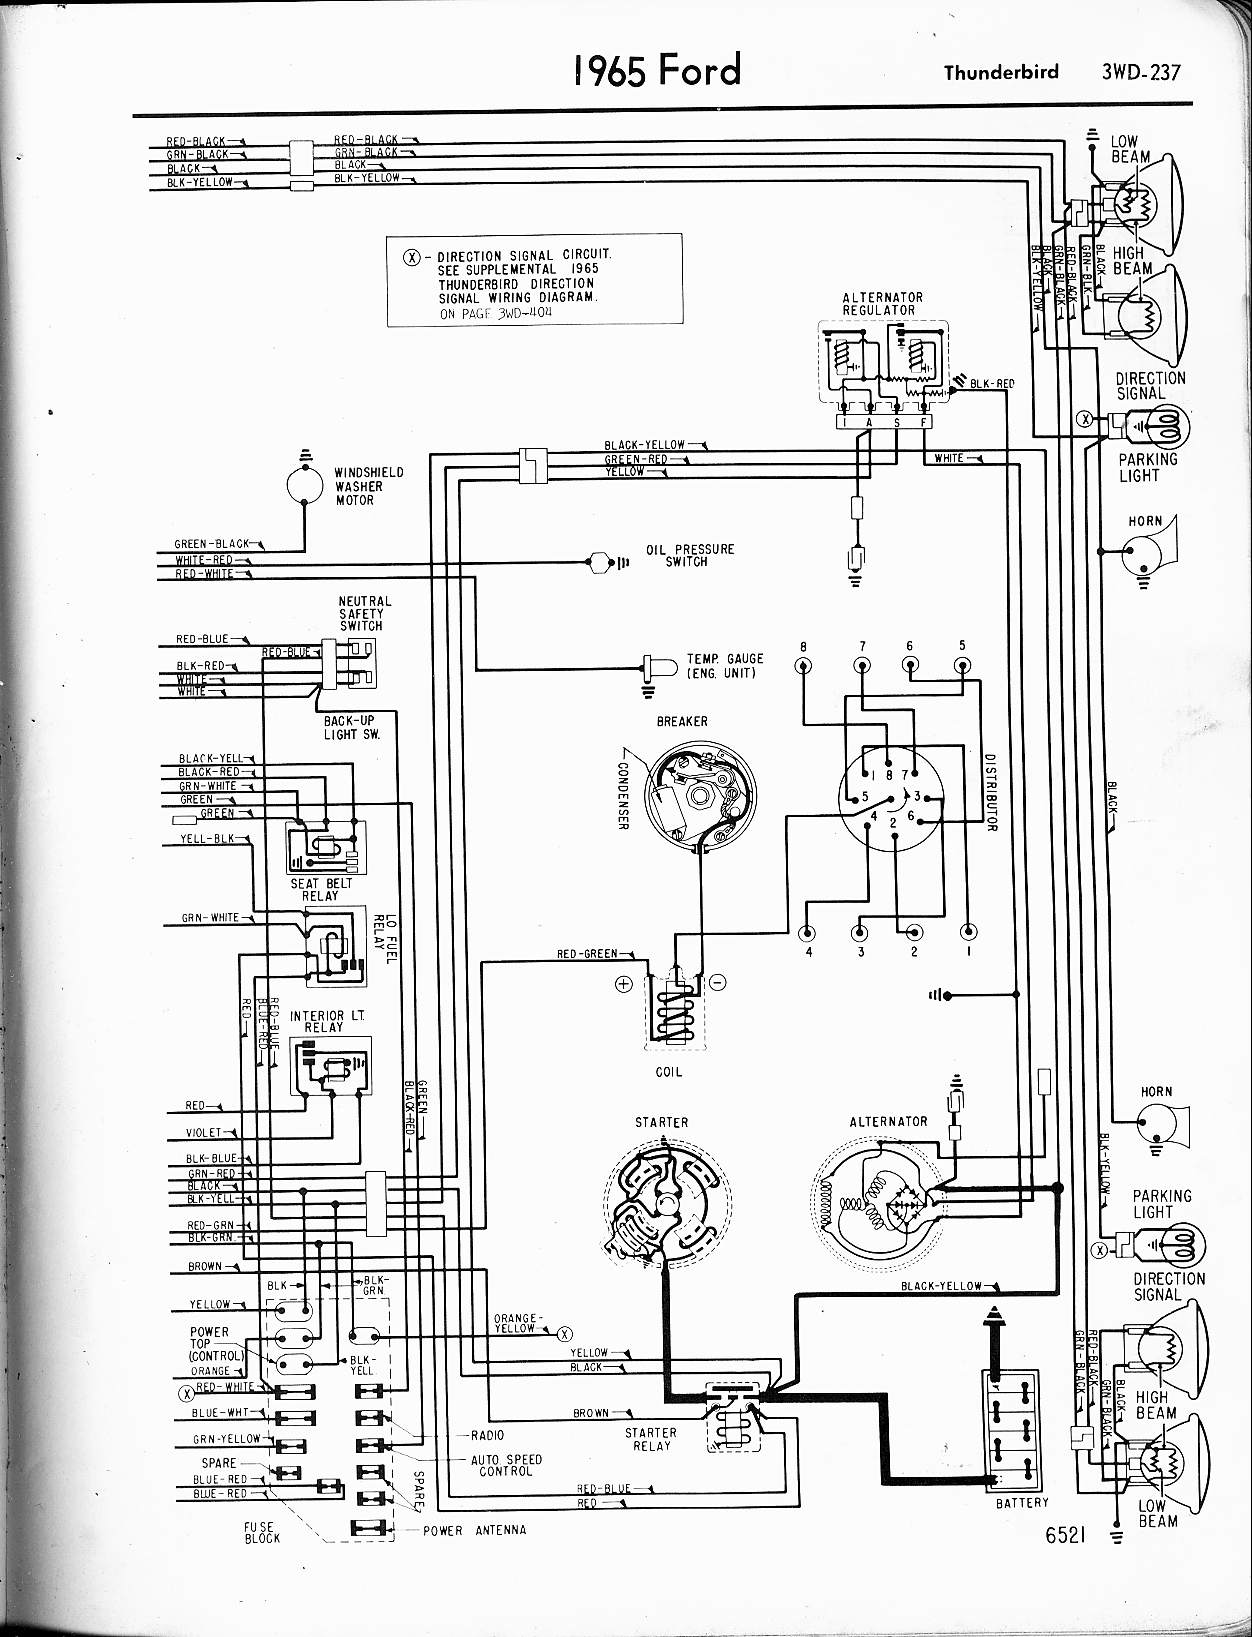 1962 ford f250 wiring diagram | wiring library 1962 ford f 250 circuit diagram